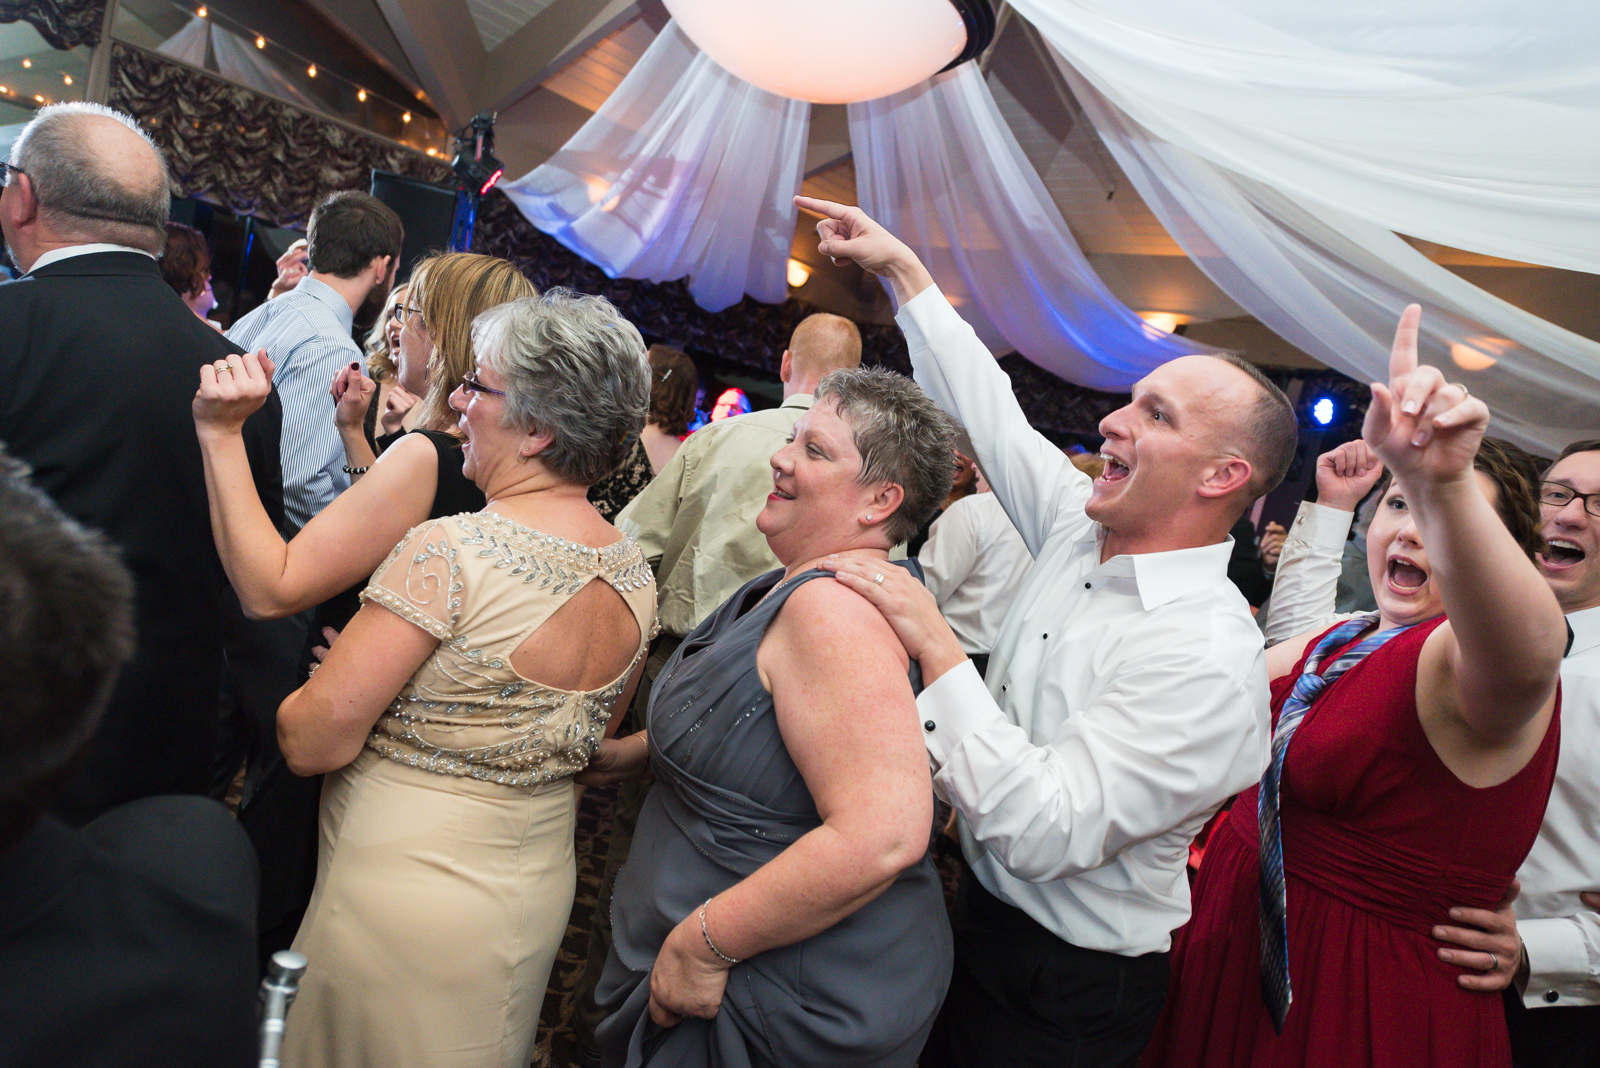 Scranton-clarks-summit-wedding-glen-oaks-contry-club-wedding-photographer-steven-serge-99.jpg